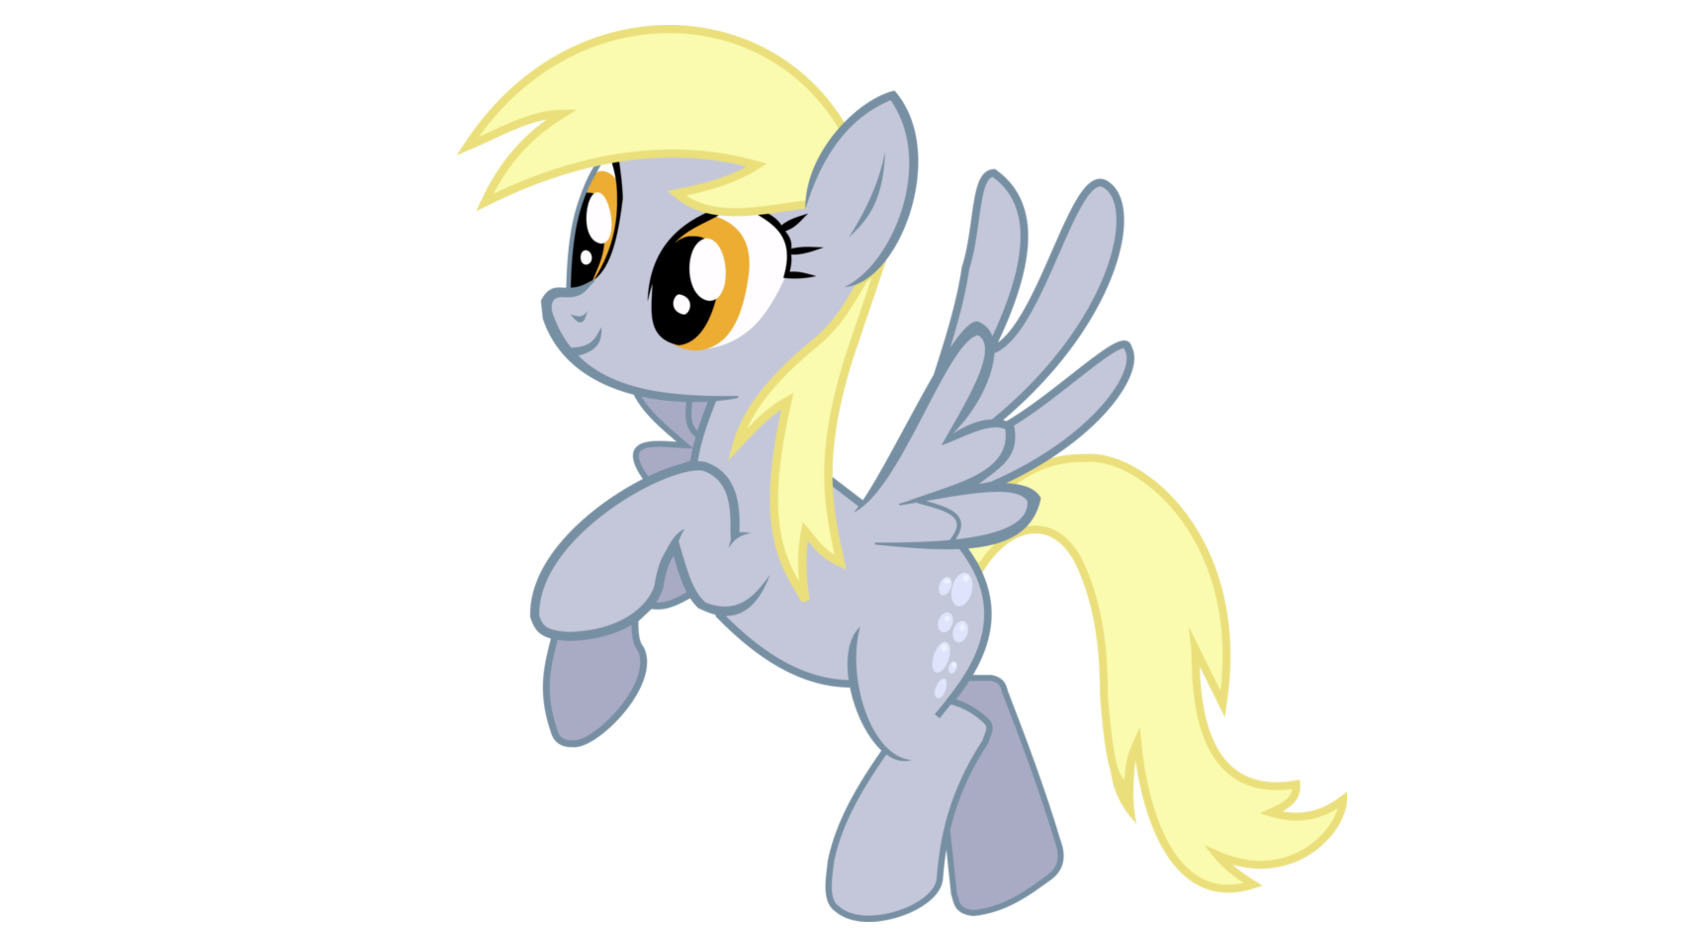 Derpy Hooves | Know Your Meme